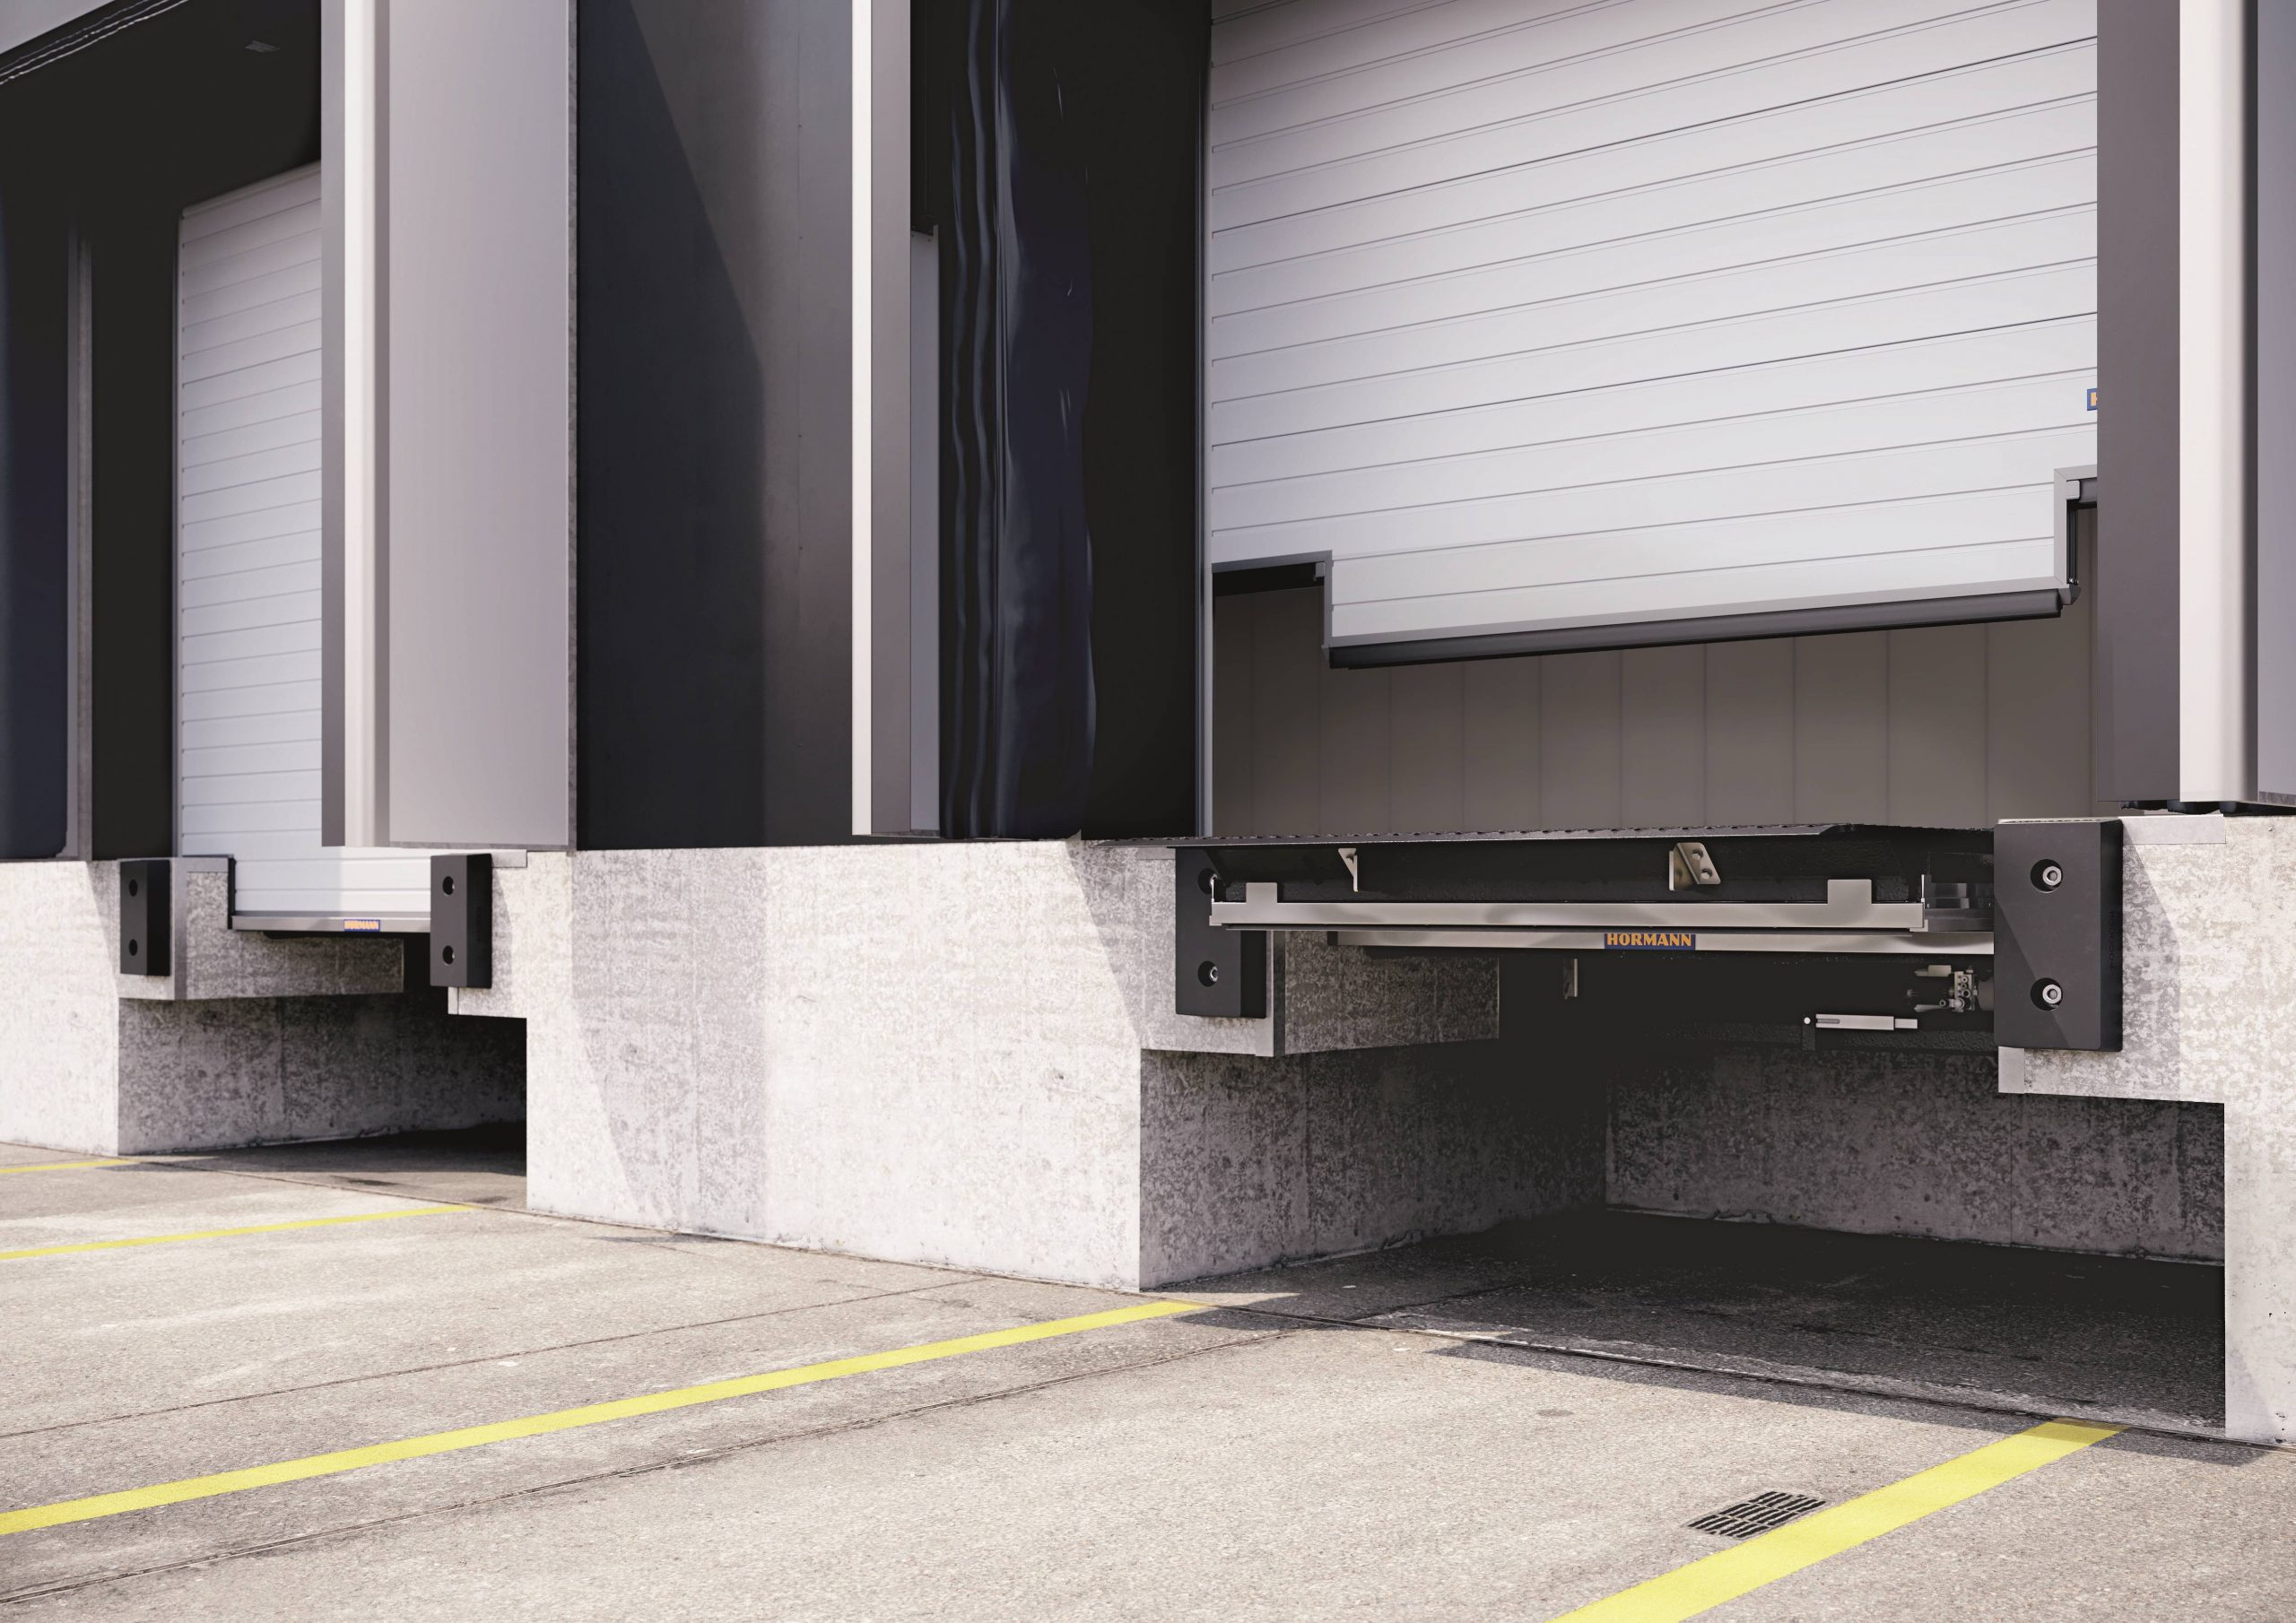 Improve Thermal Insulation with Hörmann Loading Technology